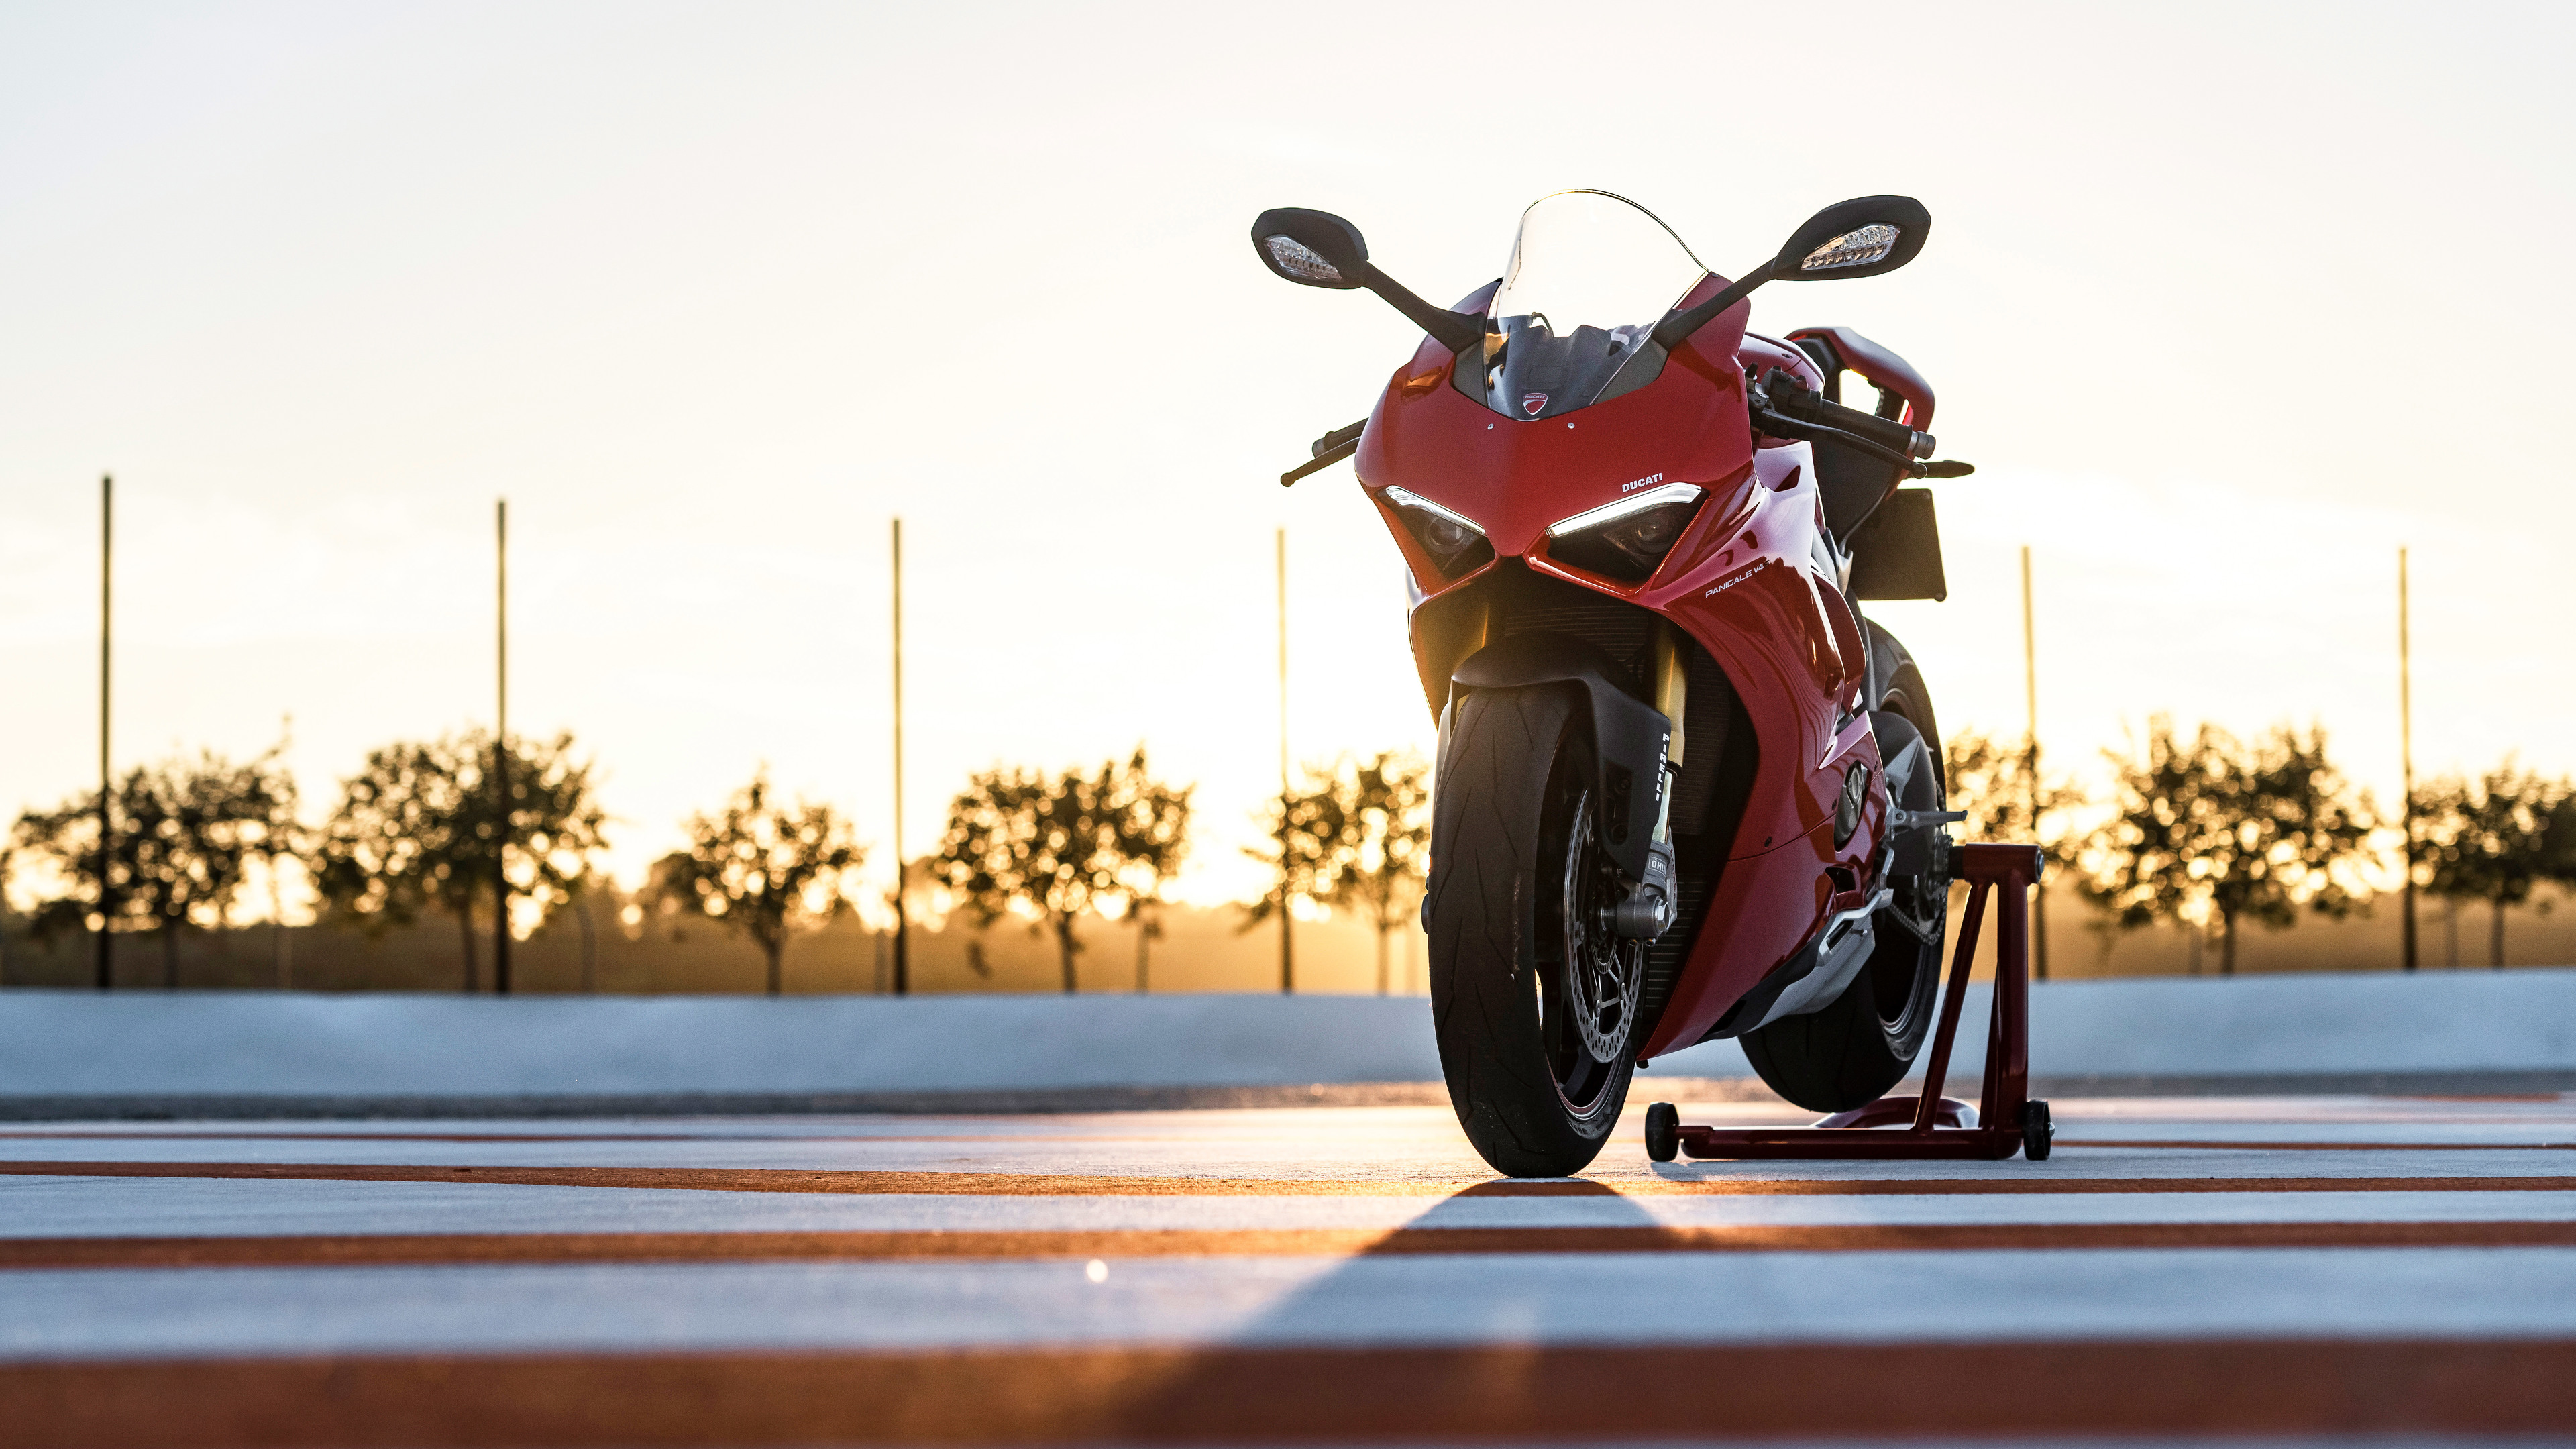 ducati panigale v4 4k 1547937832 - Ducati Panigale V4 4k - hd-wallpapers, ducati wallpapers, ducati panigale wallpapers, bikes wallpapers, 8k wallpapers, 5k wallpapers, 4k-wallpapers, 2018 bikes wallpapers